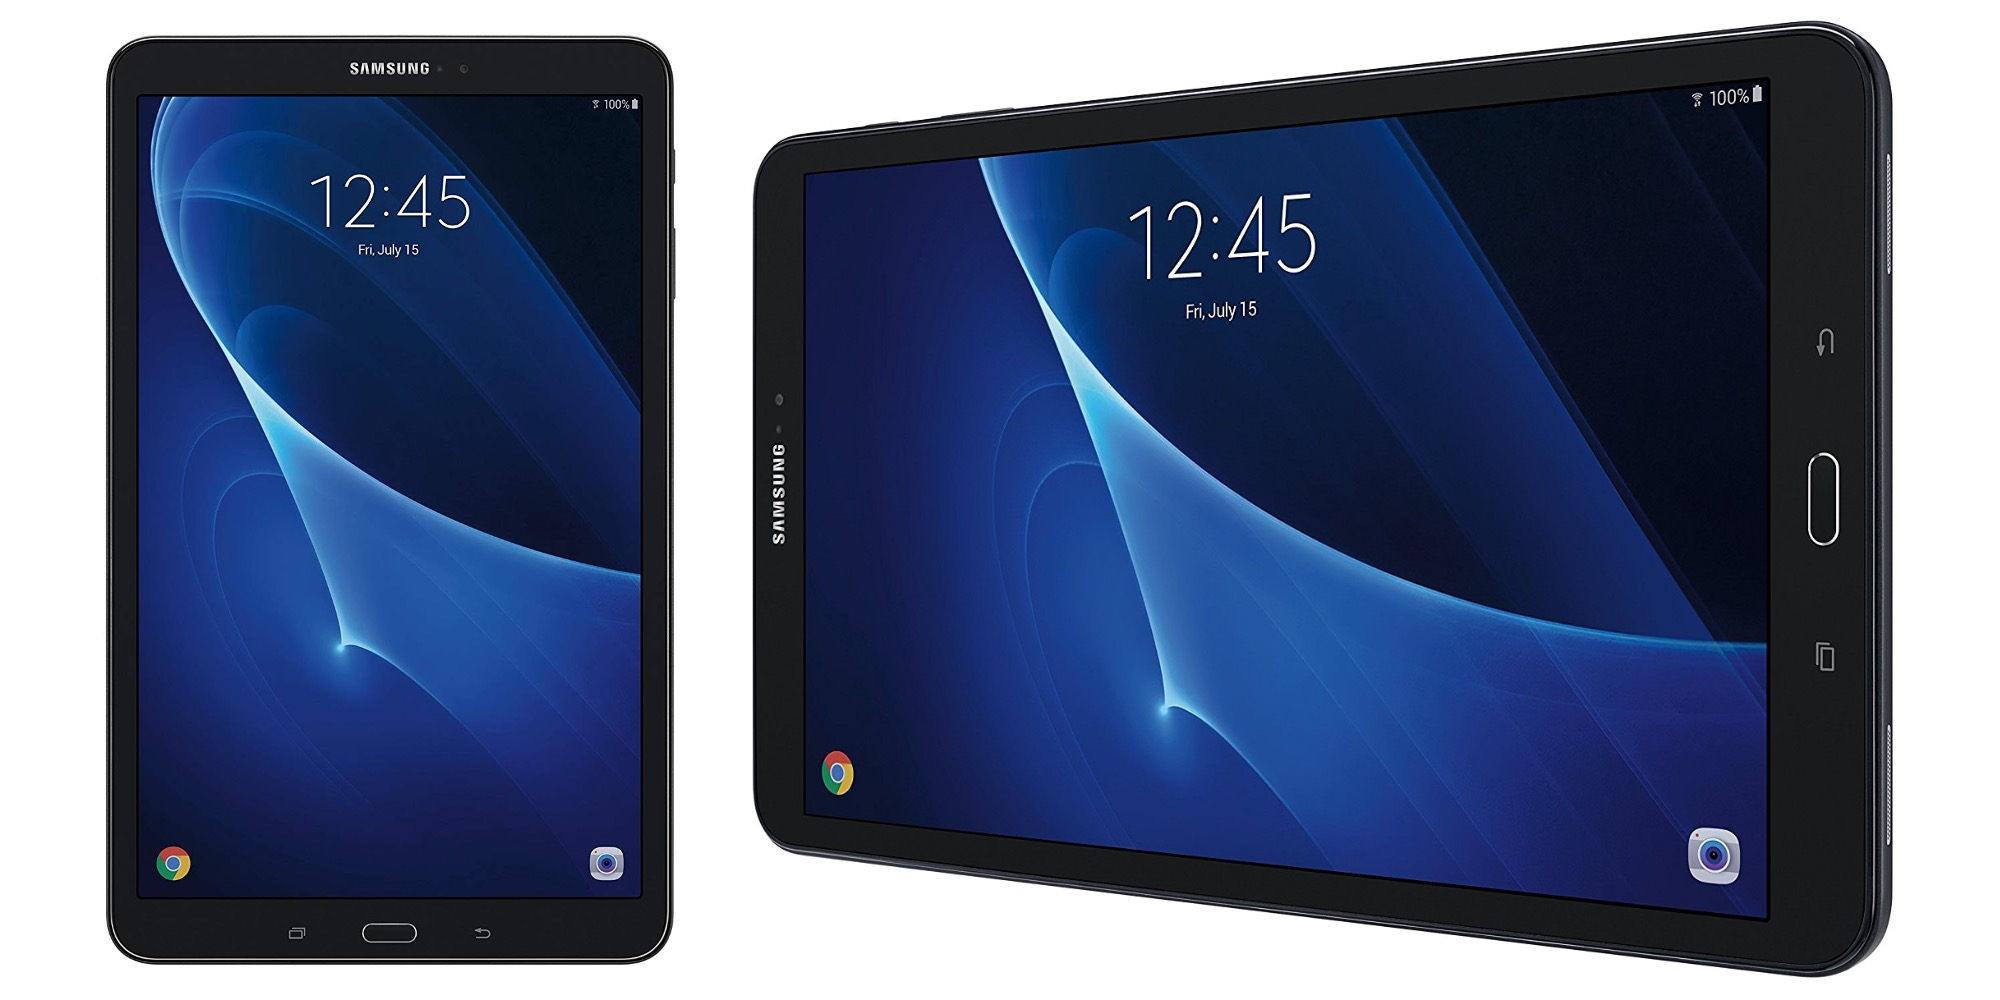 Samsung's 10.1-inch Galaxy Tab A Tablet drops to new Amazon low of $158 shipped (Reg. $250)